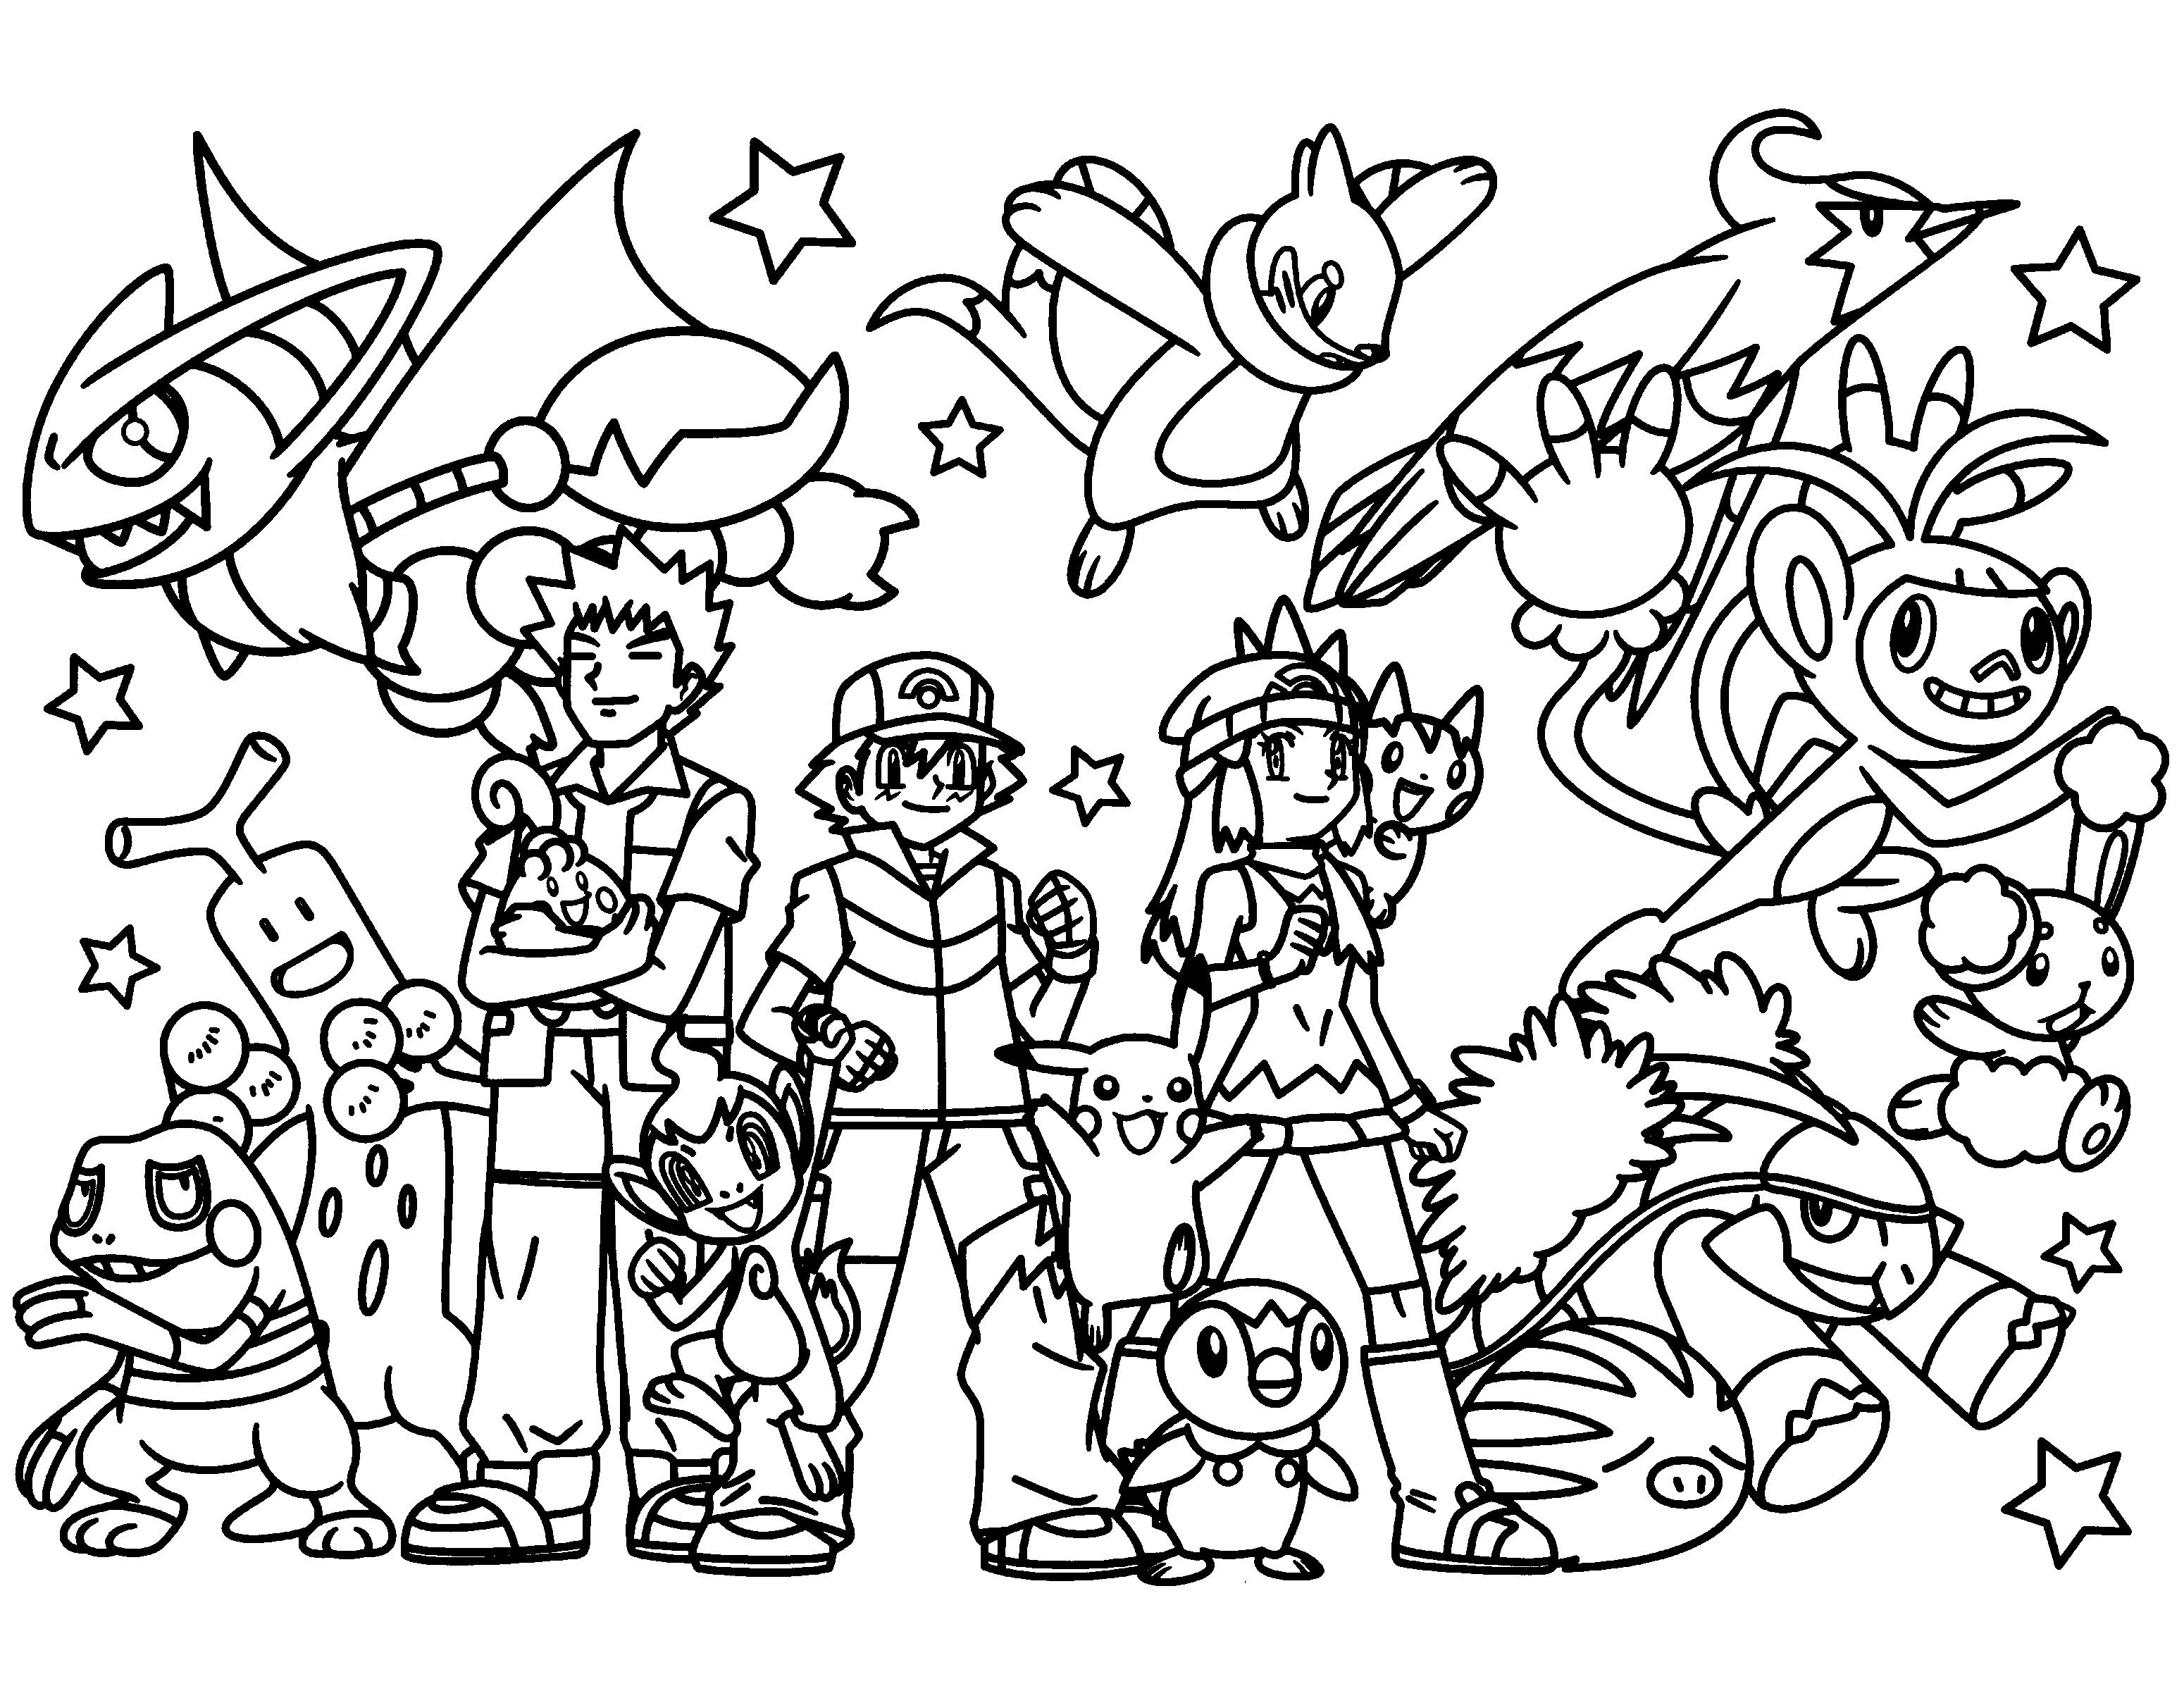 Pokemon Coloring Pages. Join your favorite Pokemon on an Adventure!